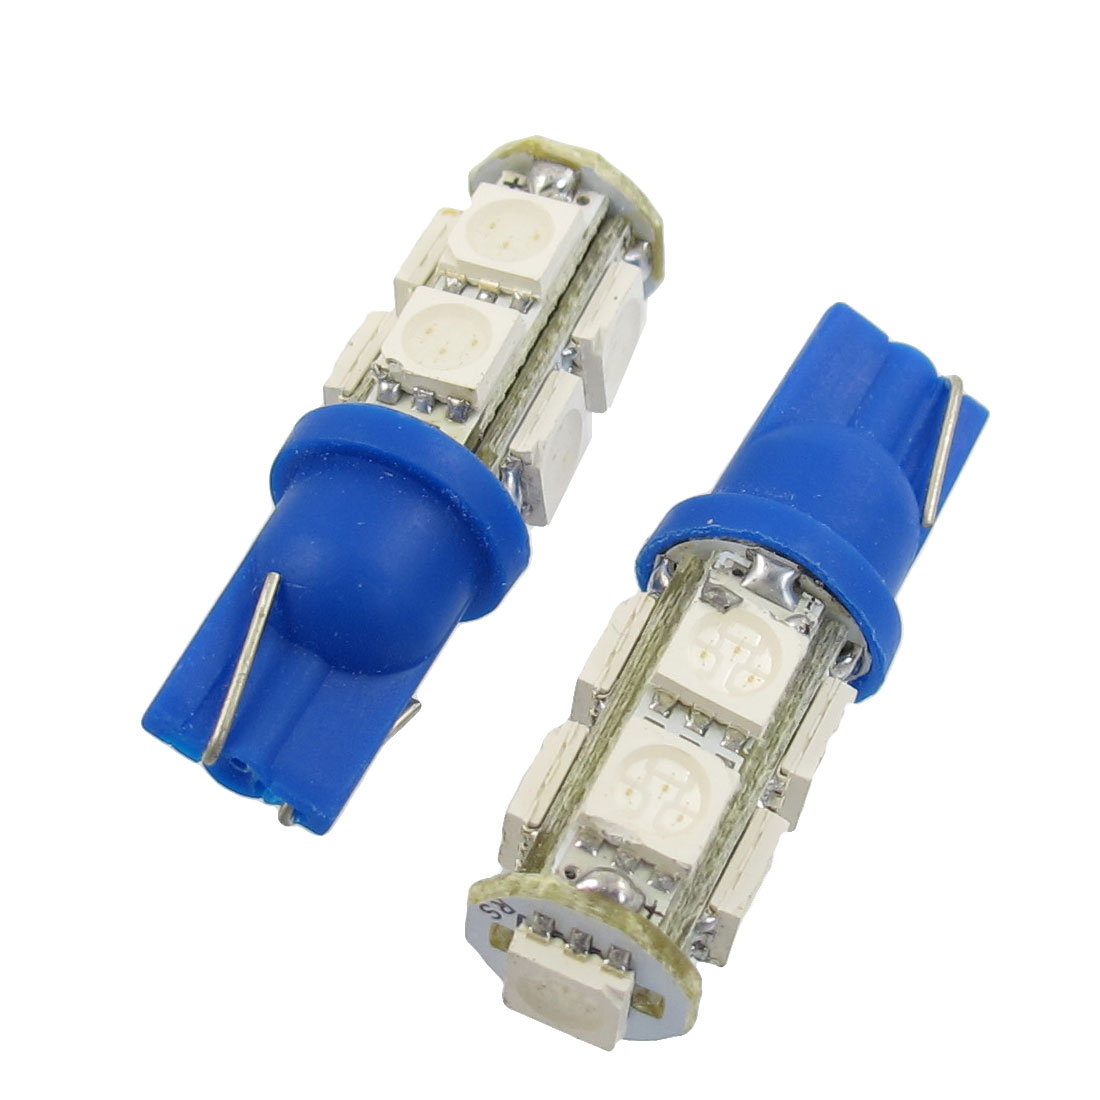 2-Pcs-T10-194-168-W5W-Blue-5050-SMD-9-LED-Car-Light-Bulb-lamp-12V